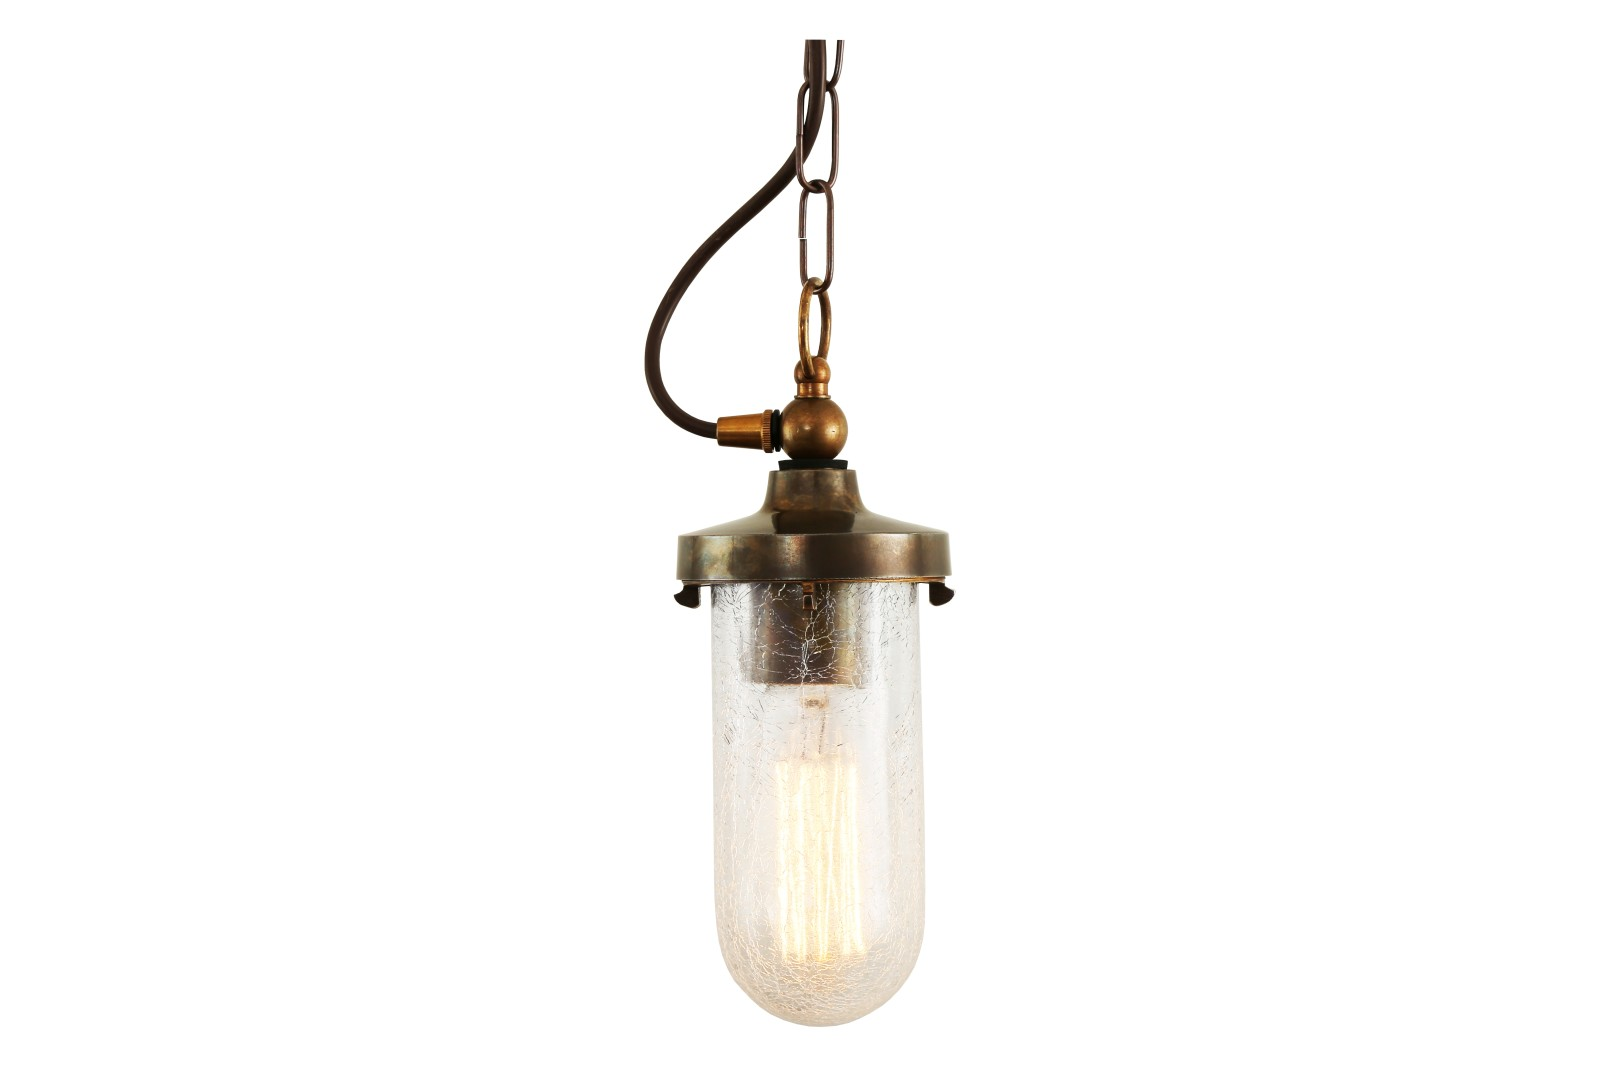 Oregon B Well Pendant Light Antique Brass, Crackled Glass